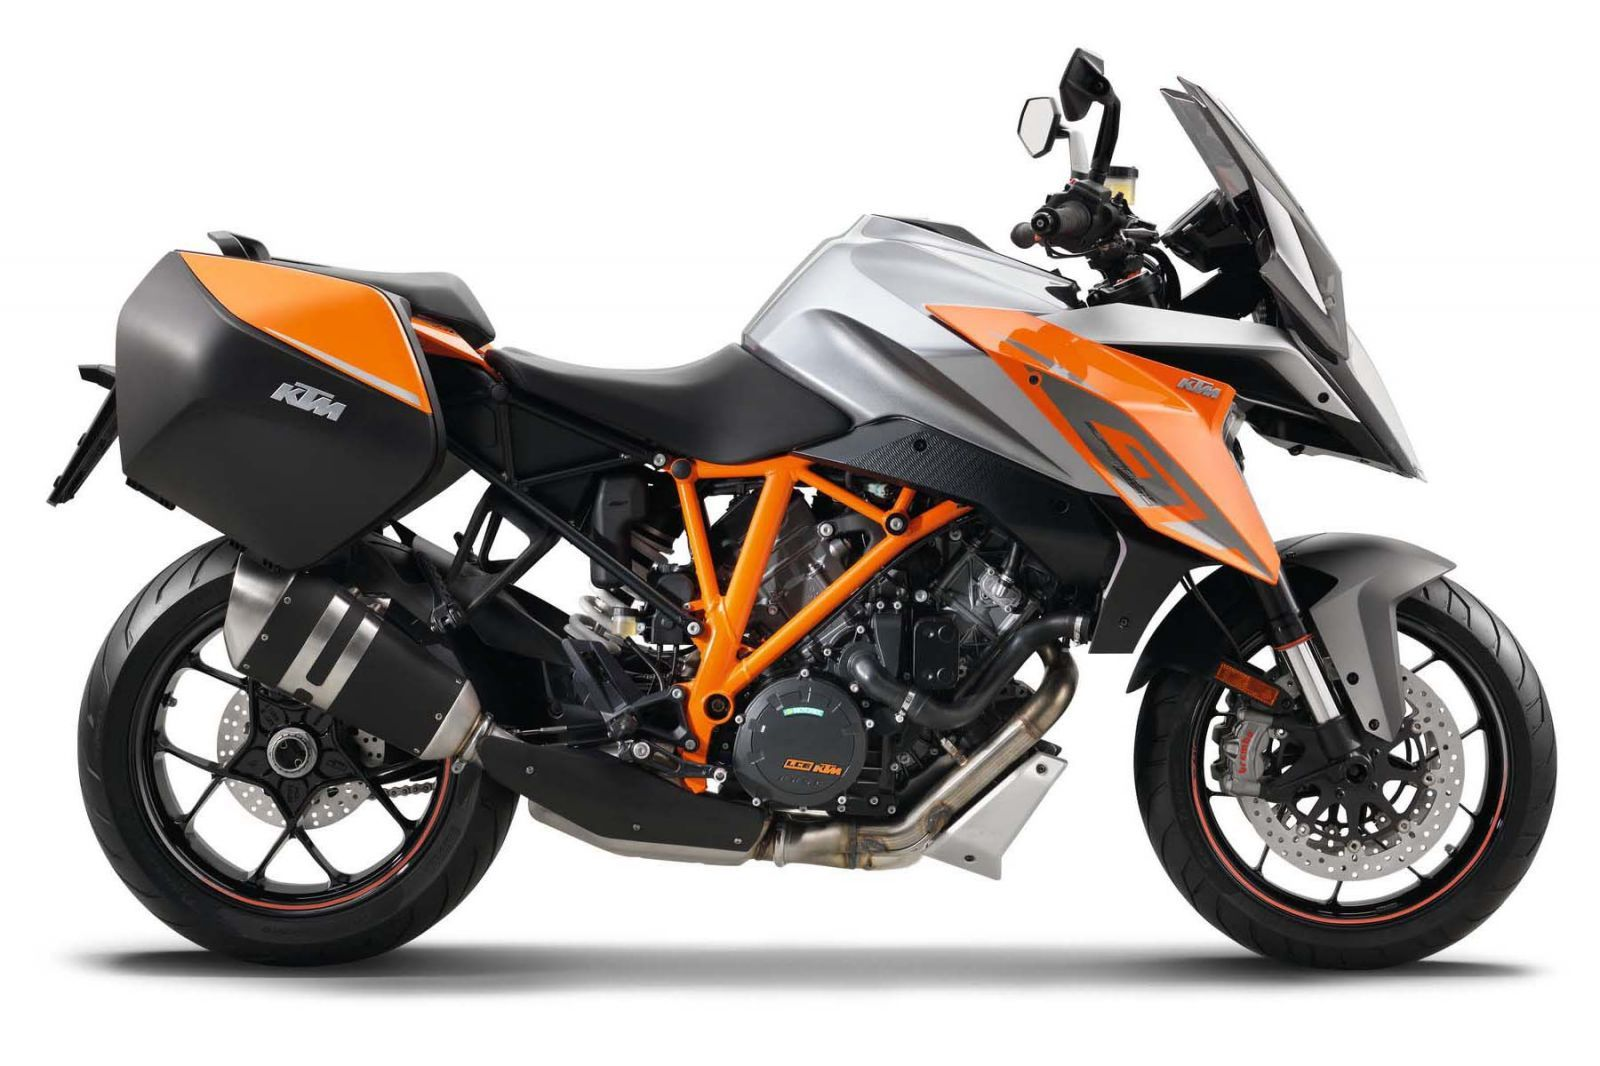 trail ktm 1290 super duke gt - moto scooter